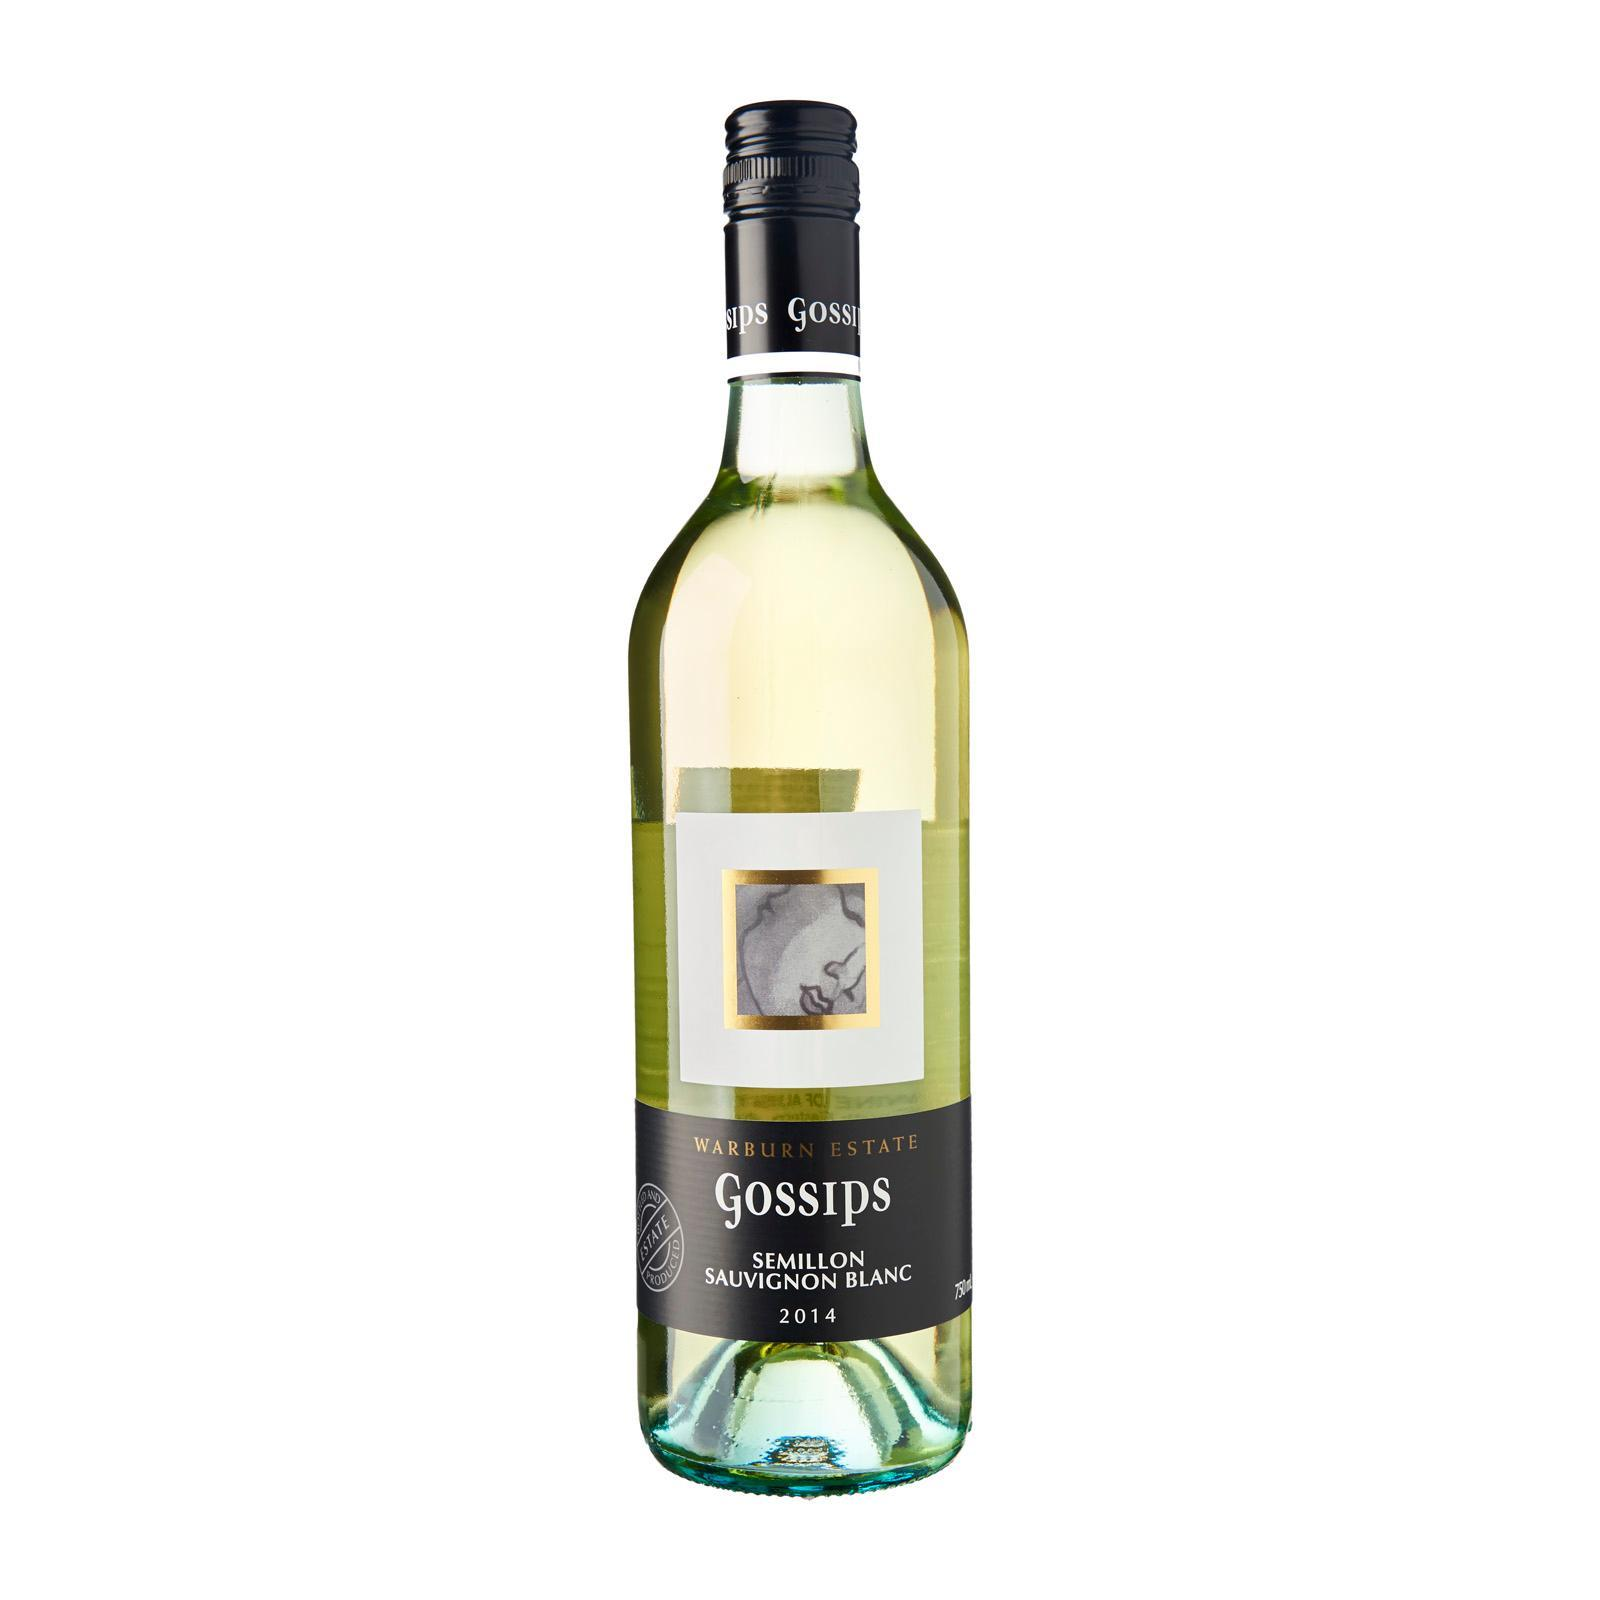 Gossips Semillon Sauvignon Blanc - By Letat-Wine and Sakes